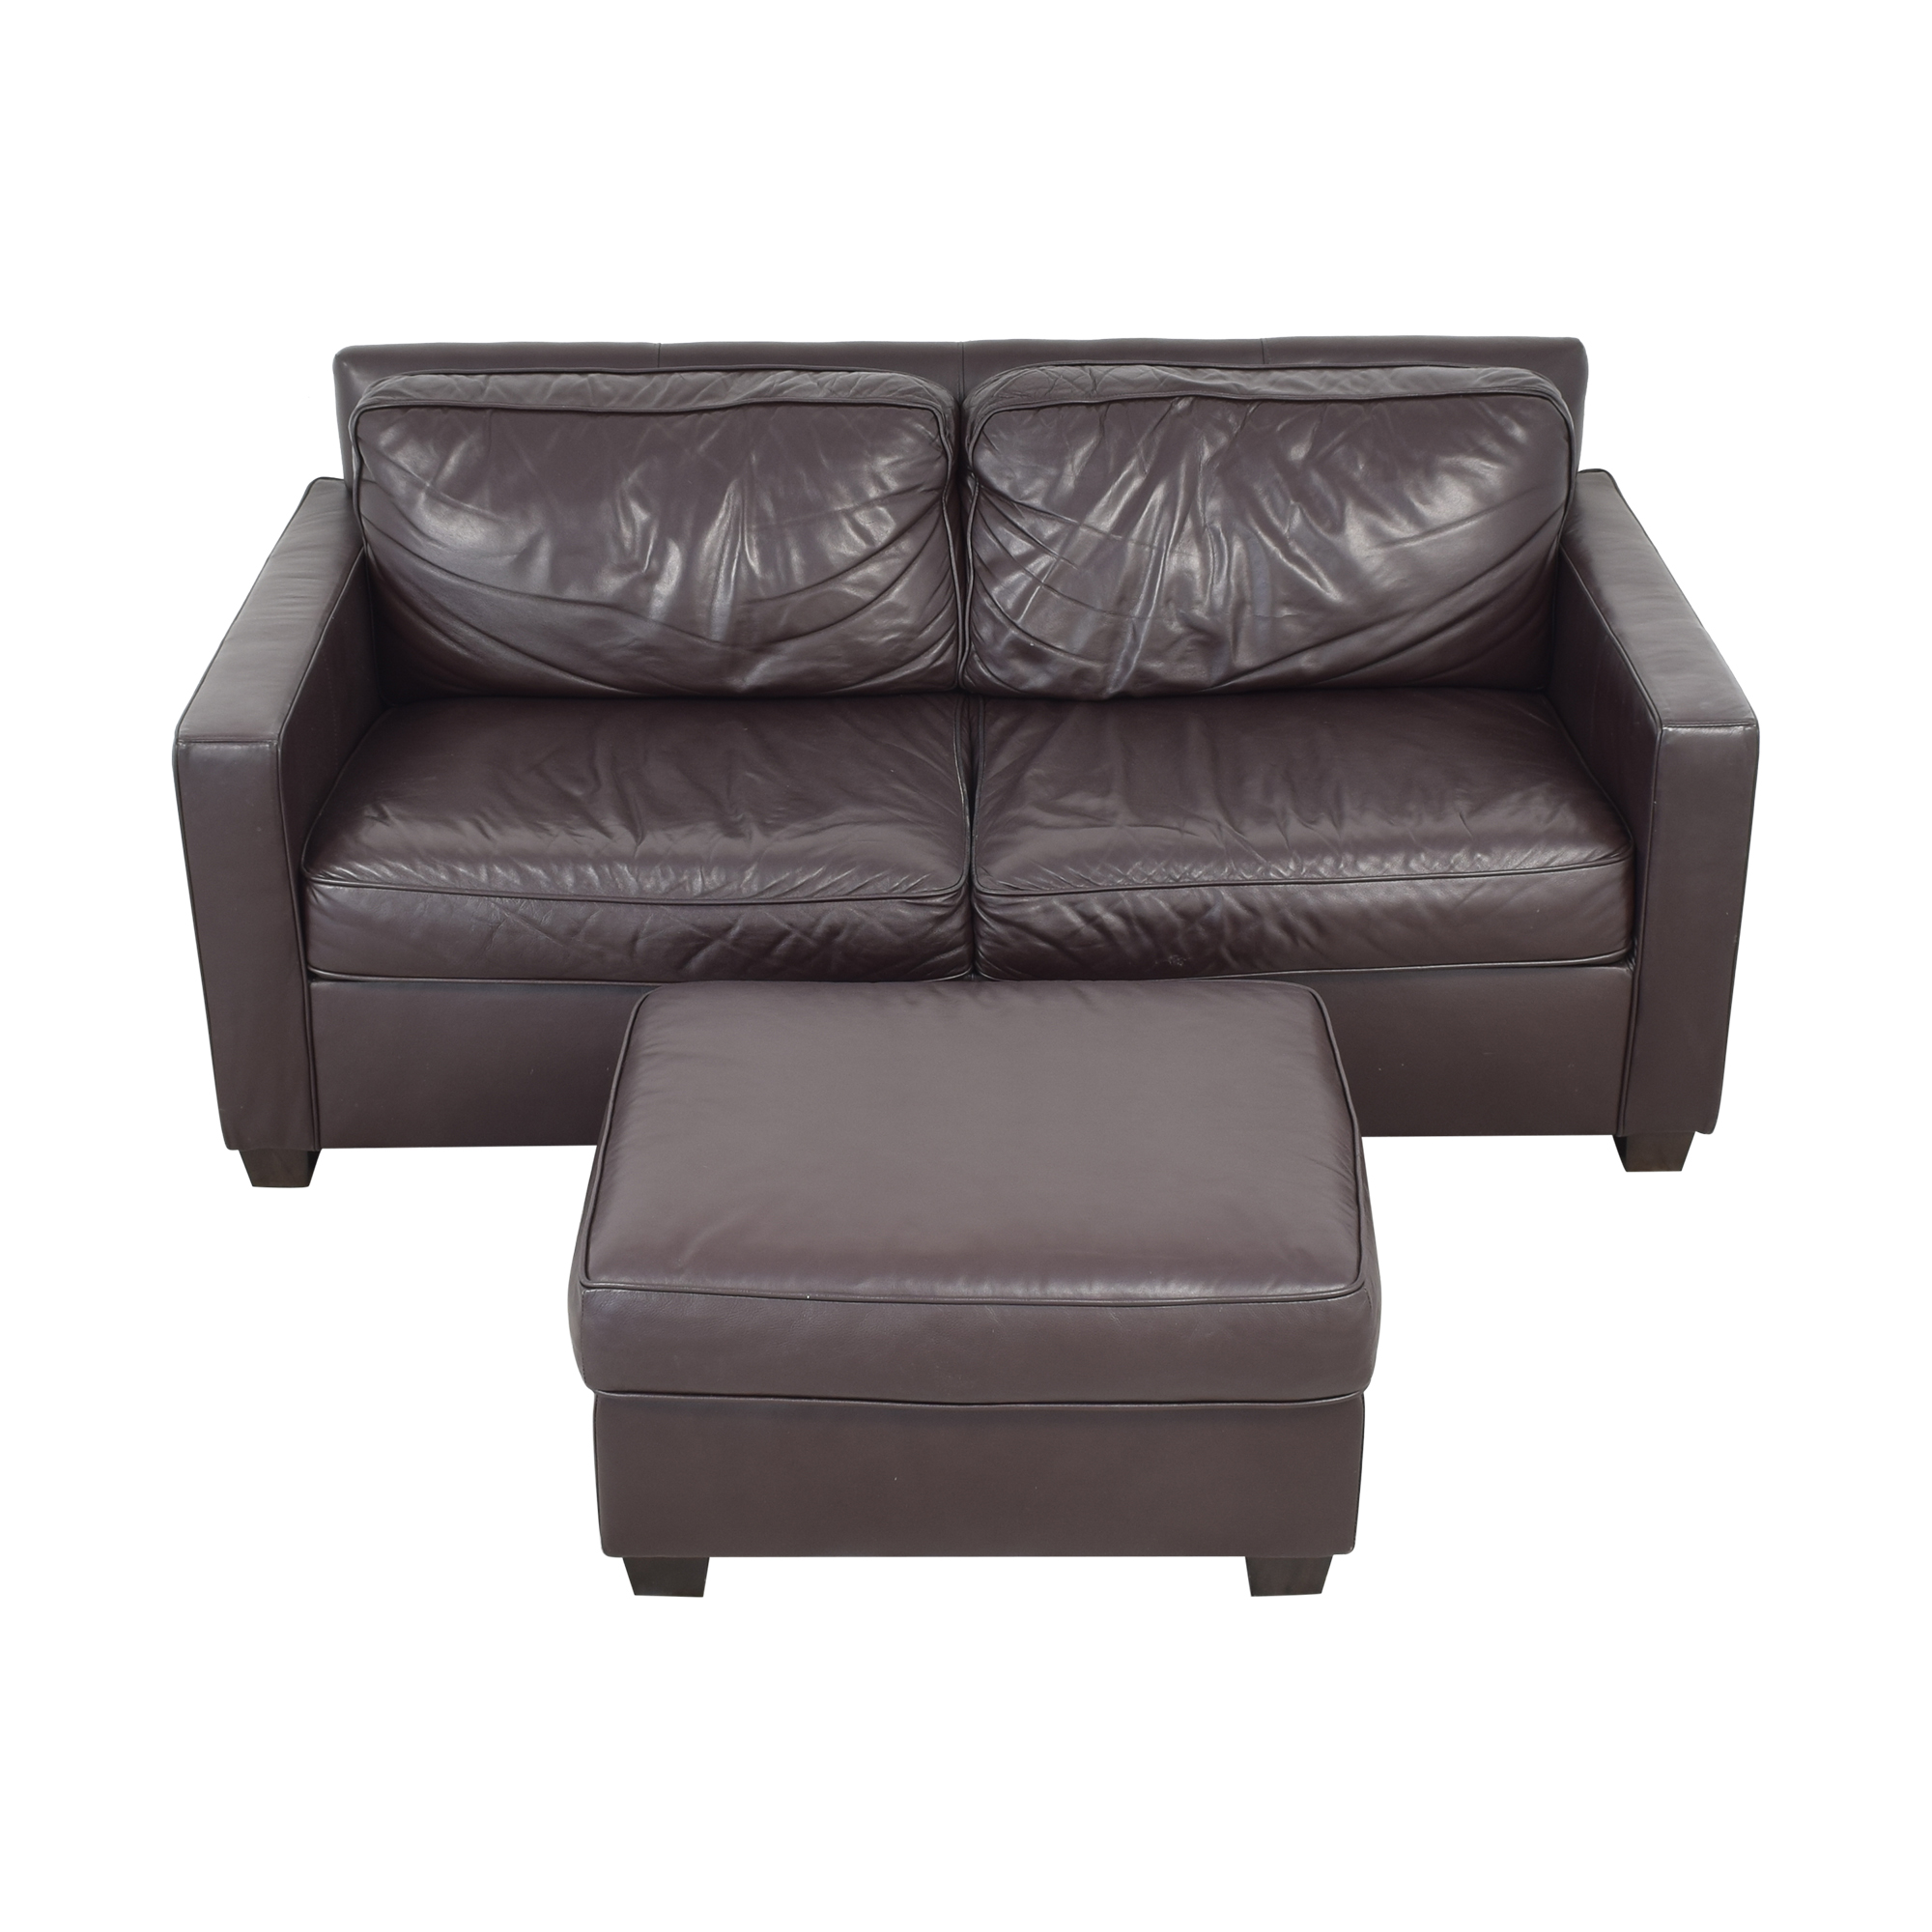 West Elm West Elm Henry Leather Sofa with Ottoman